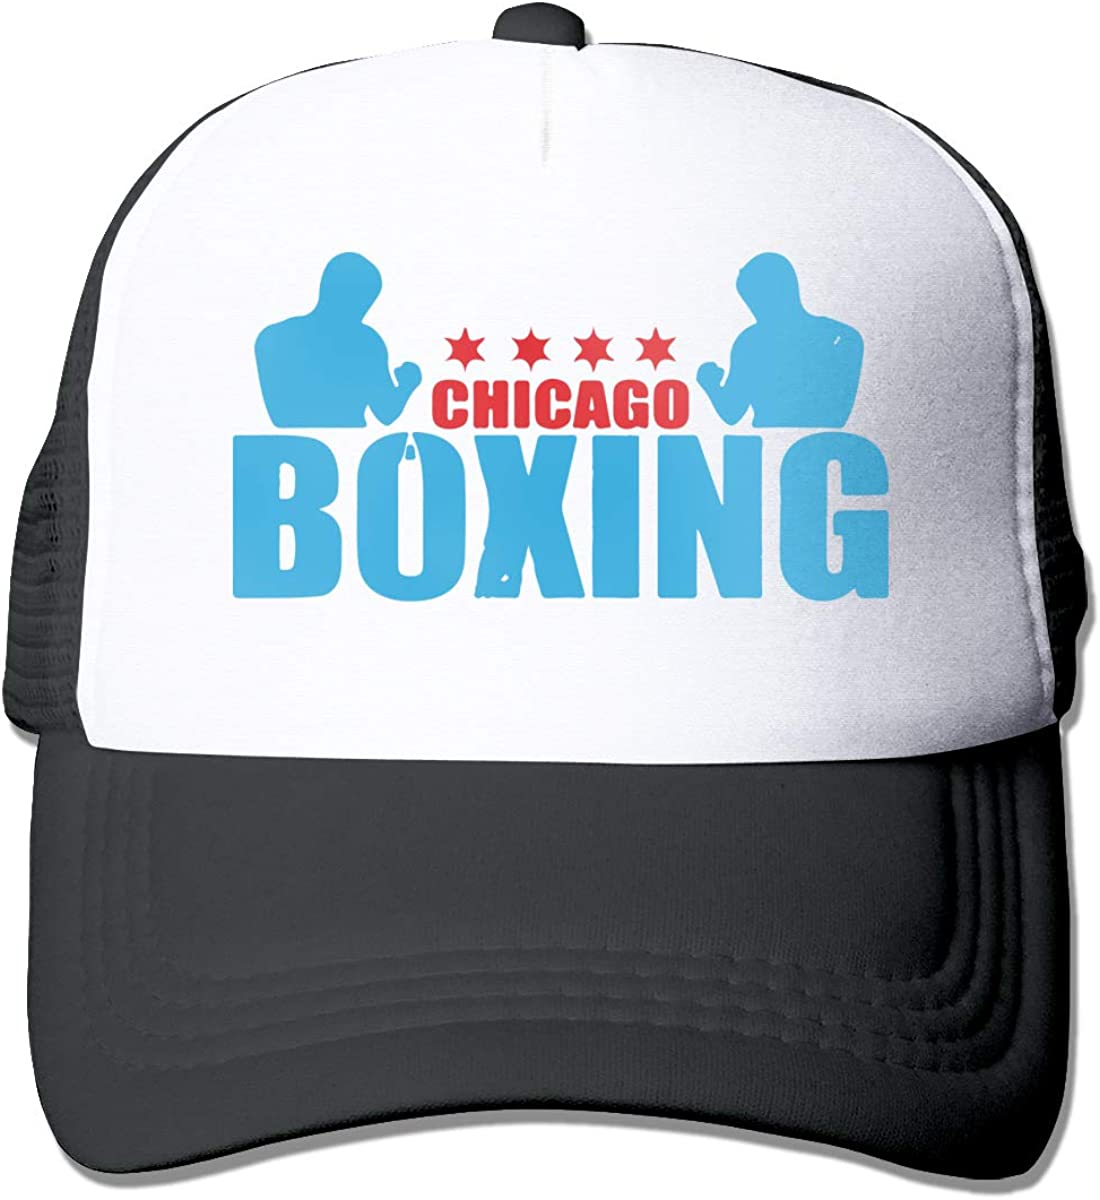 GFDHERW236 Chicago Boxing Trucker Dad-Hat Adjustable Outdoors